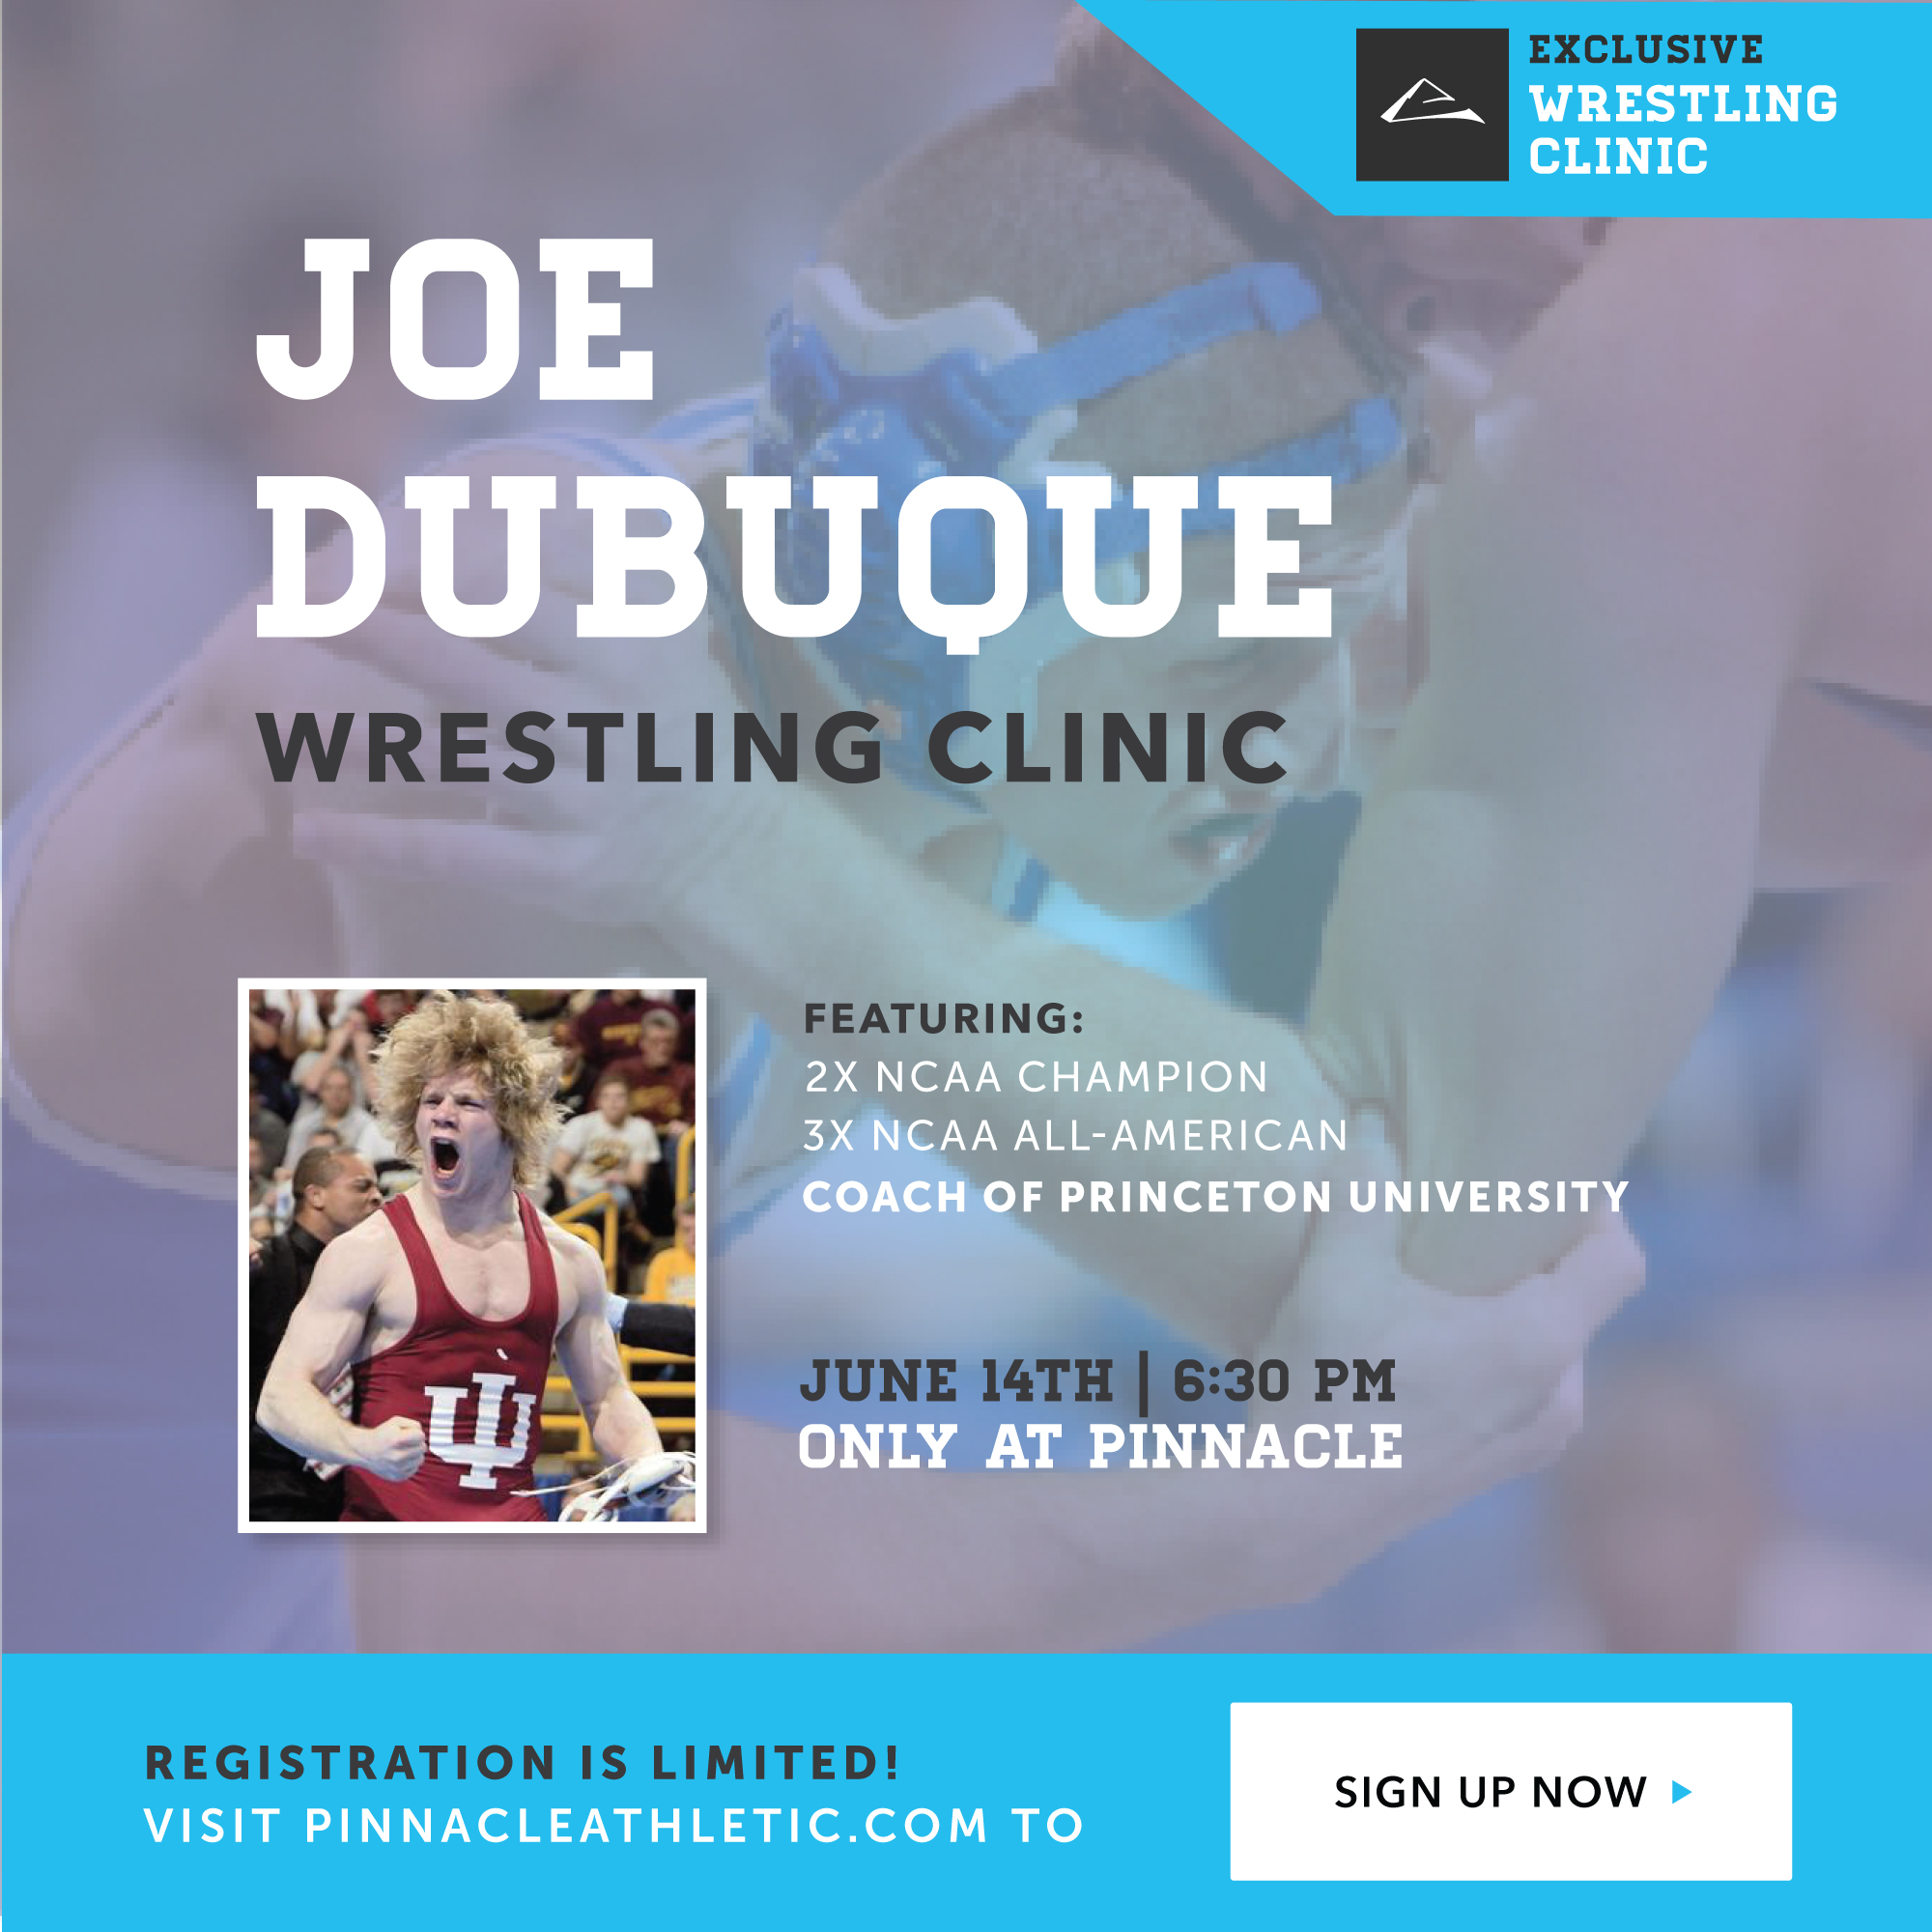 Joe Dubuque Wrestling Clinic At Pinnacle